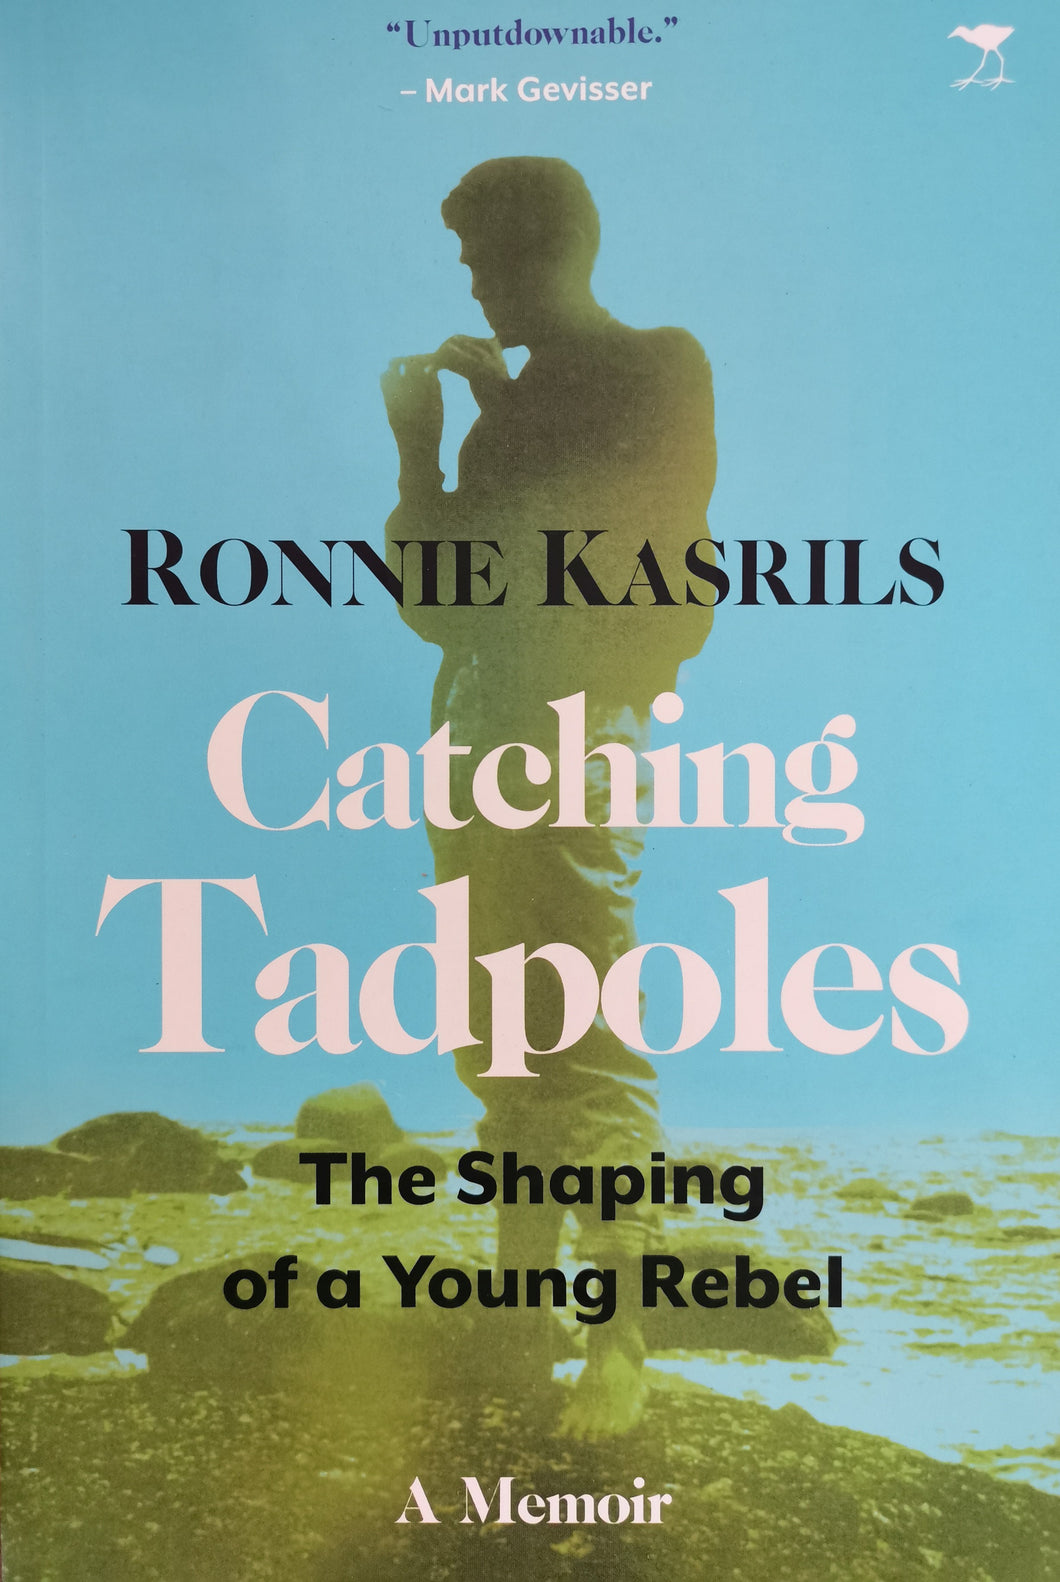 Ronnie Kasrils - Catching Tadpoles: The Shaping of a Young Rebel